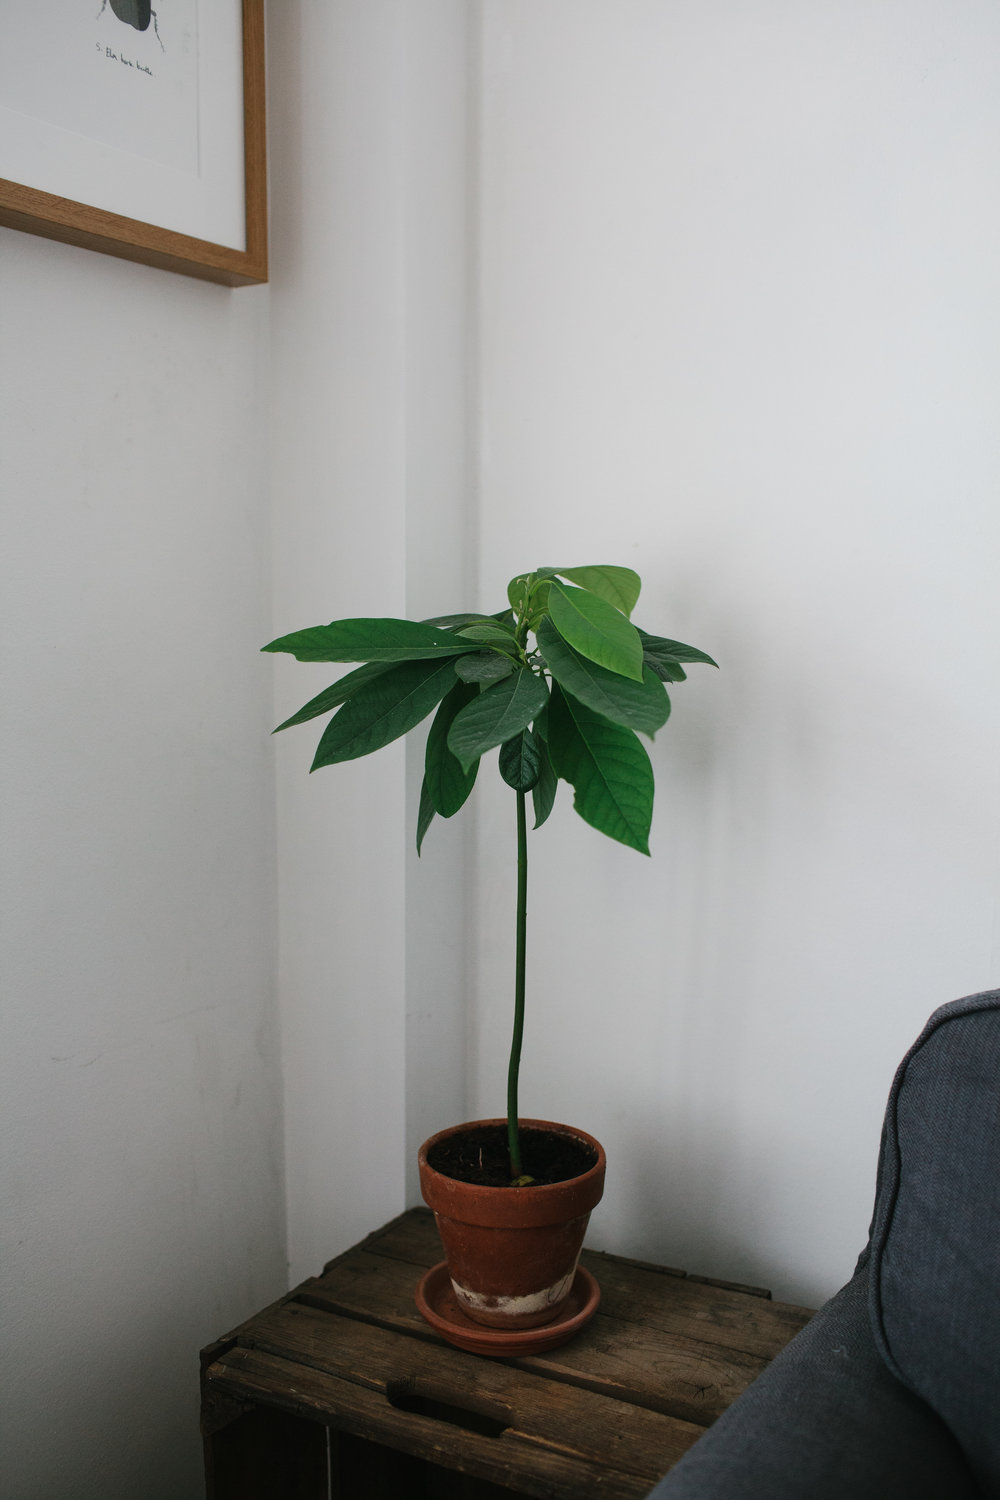 how-to-grow-avocado-from-seed-8.jpg